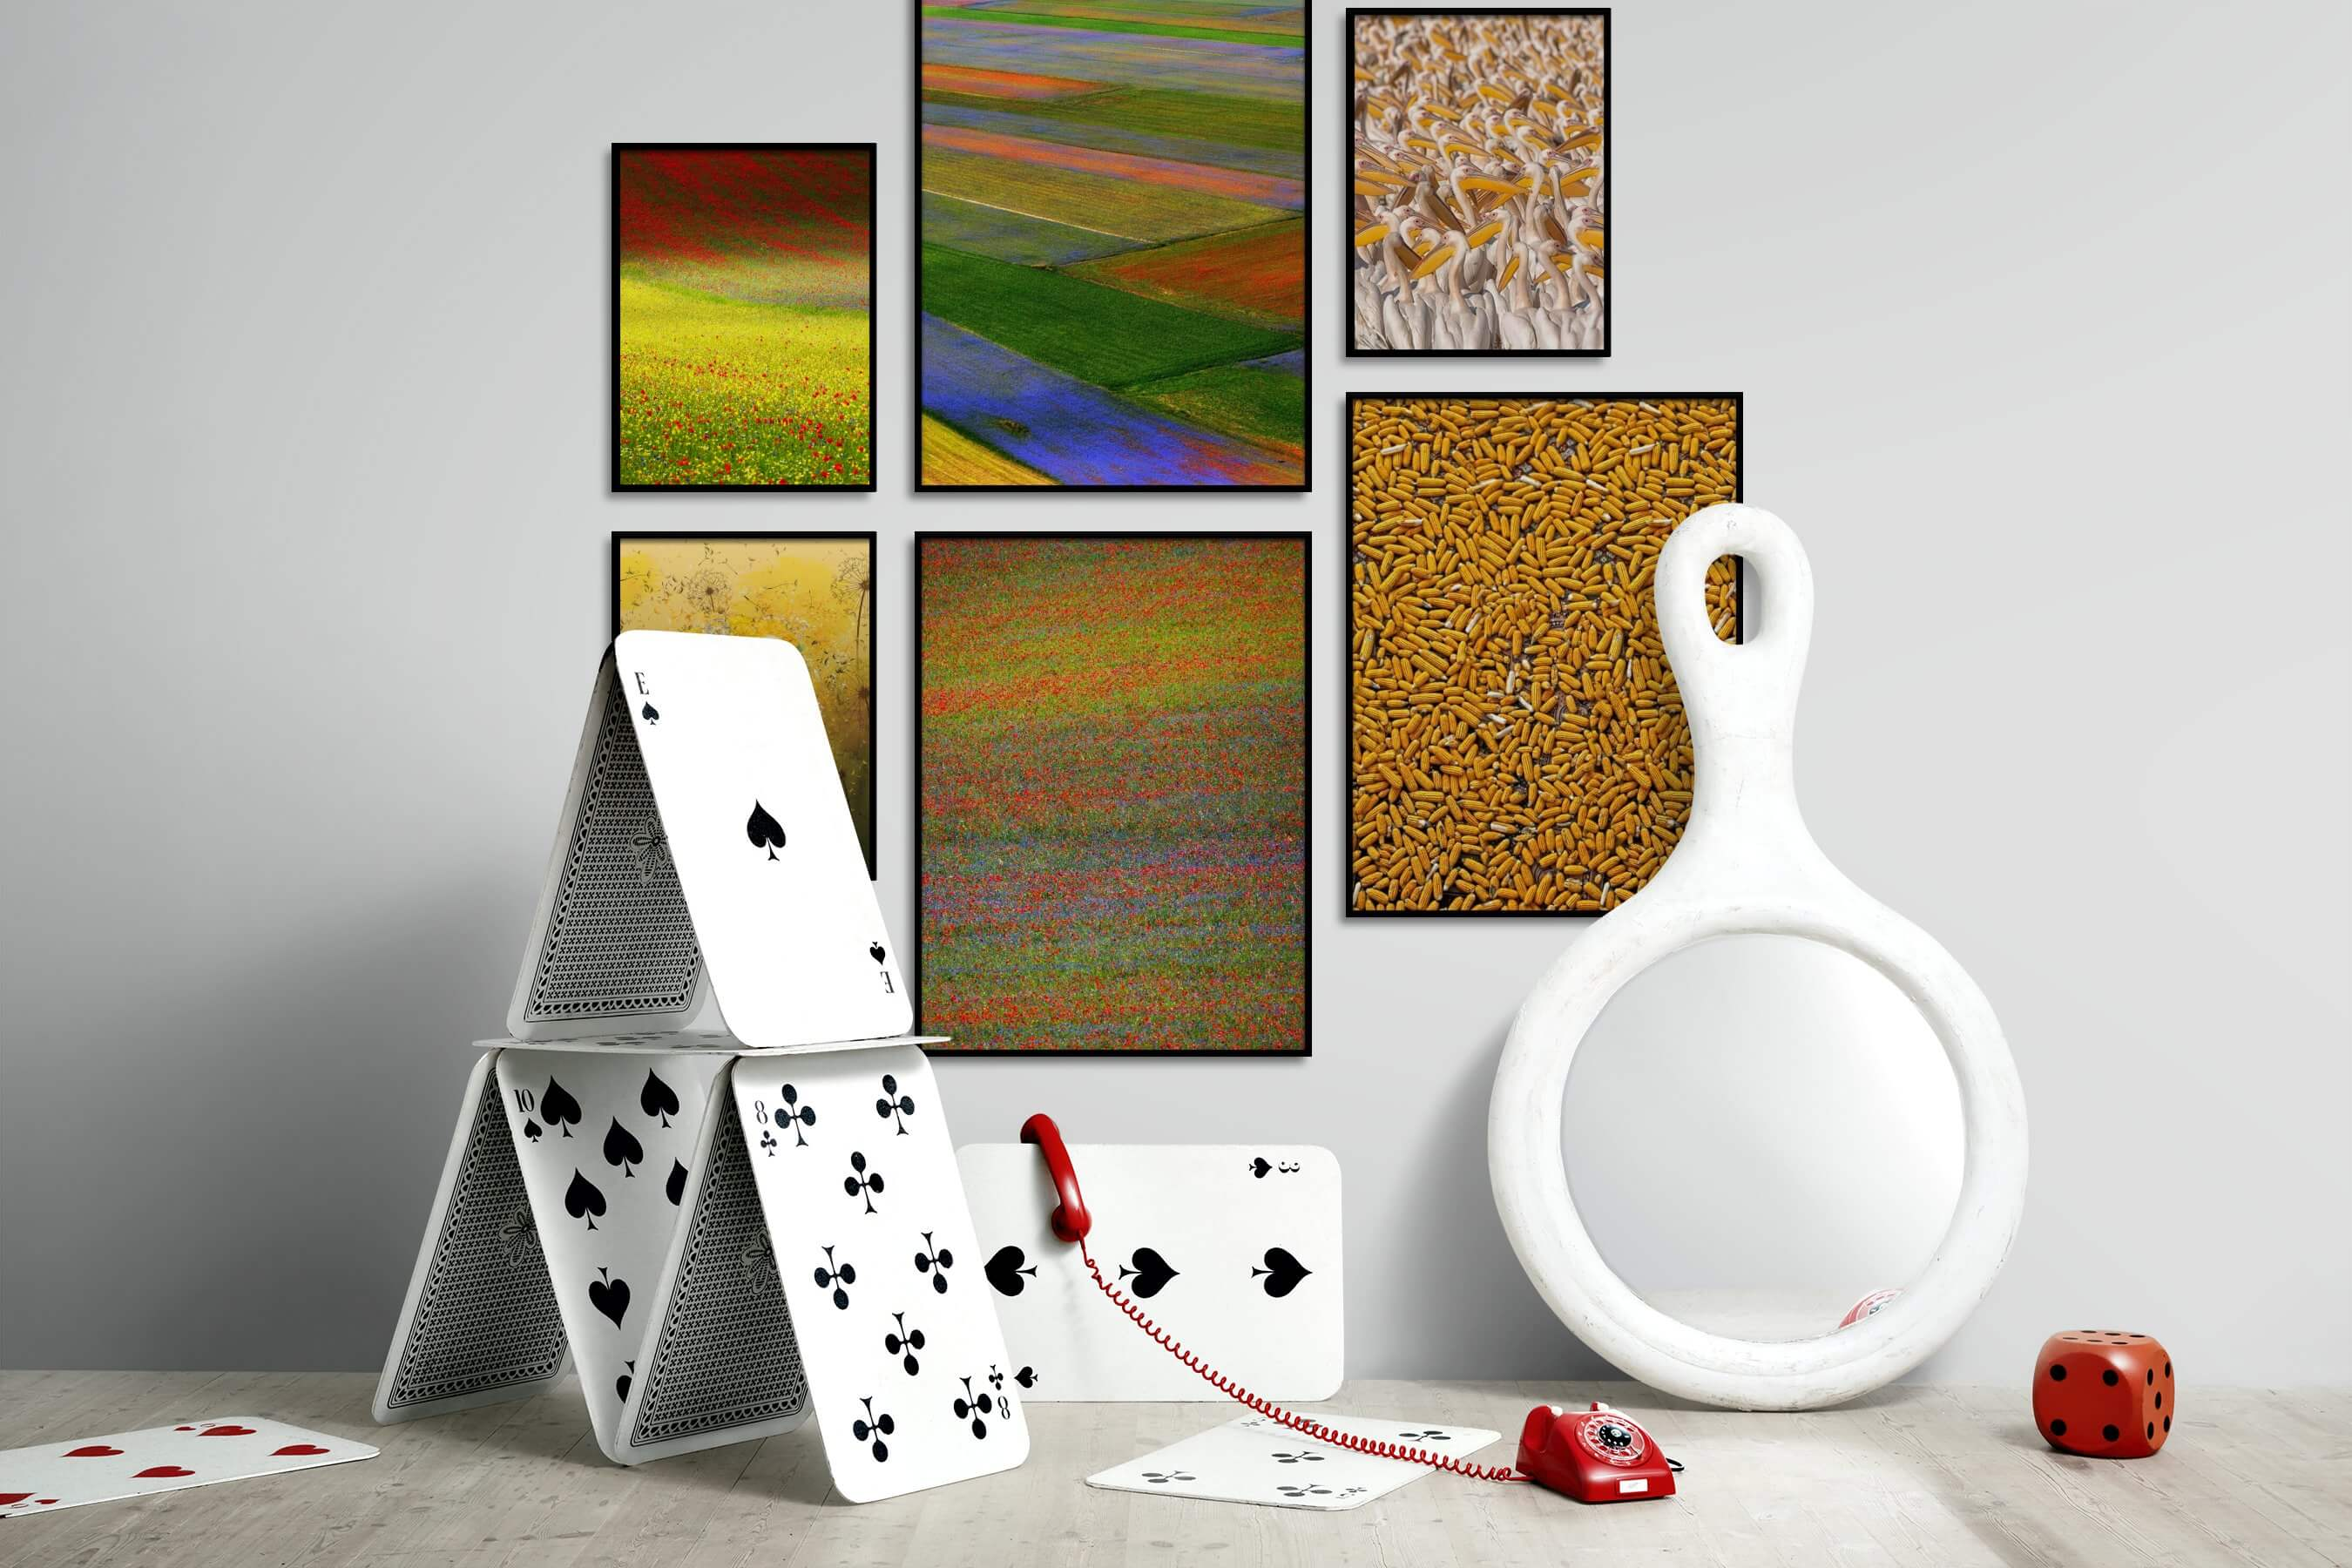 Gallery wall idea with six framed pictures arranged on a wall depicting Colorful, For the Moderate, Flowers & Plants, Country Life, For the Maximalist, Fashion & Beauty, and Animals